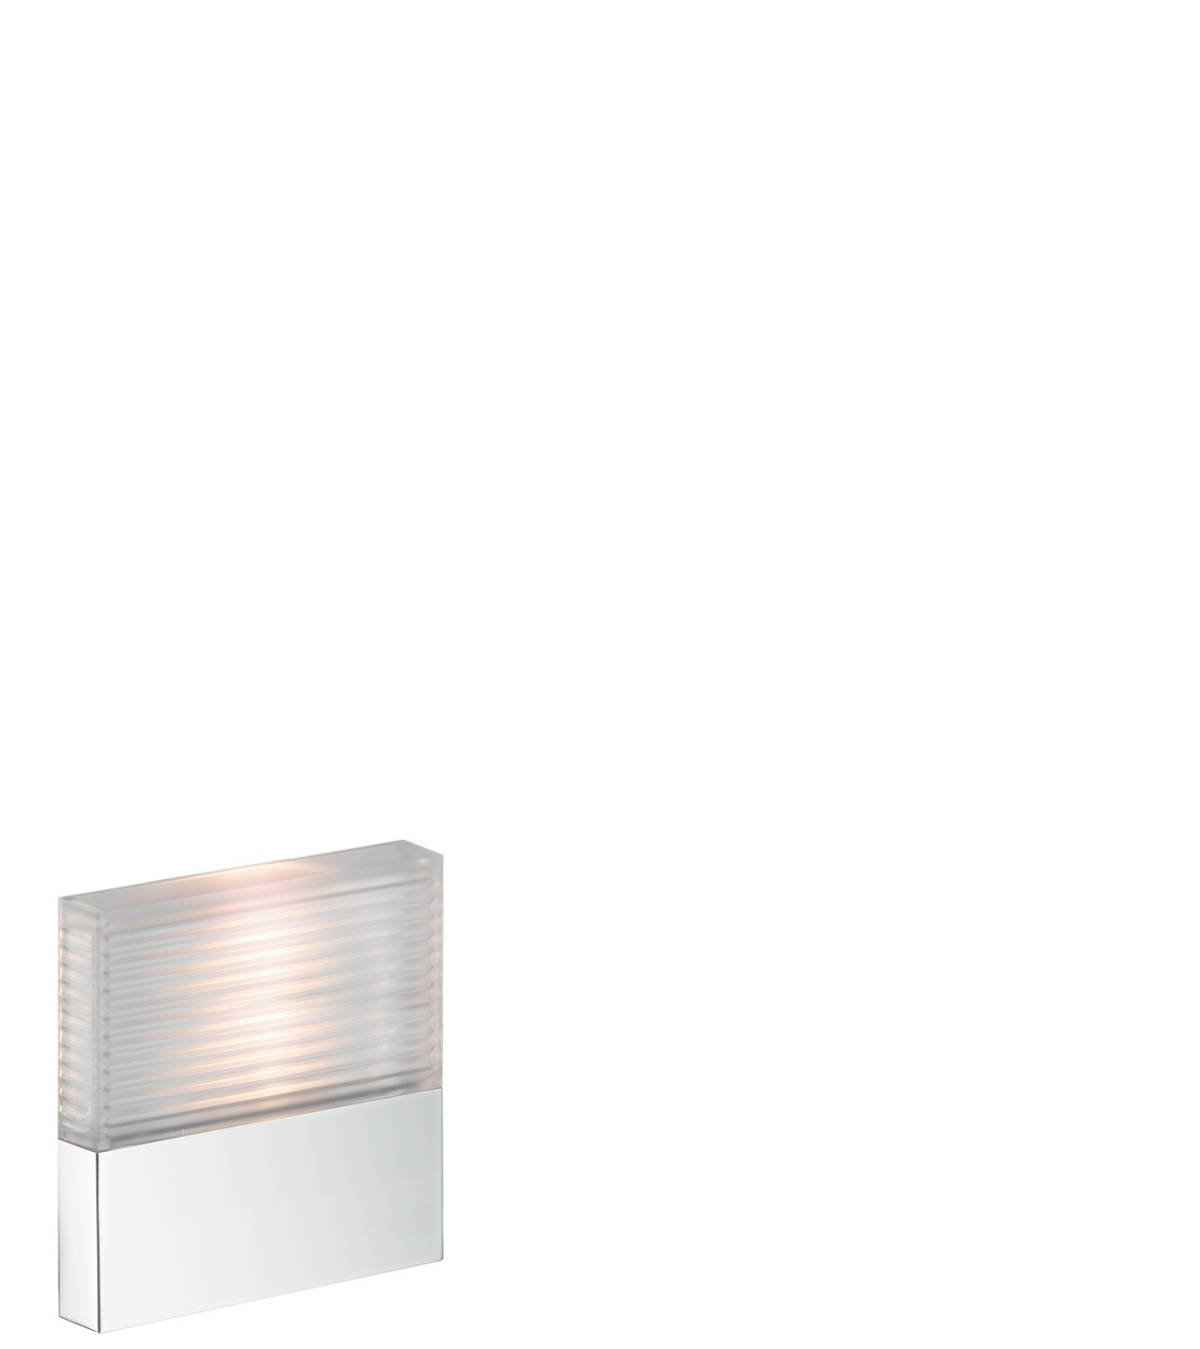 Lighting module 120/120 for concealed installation, Chrome, 40871000